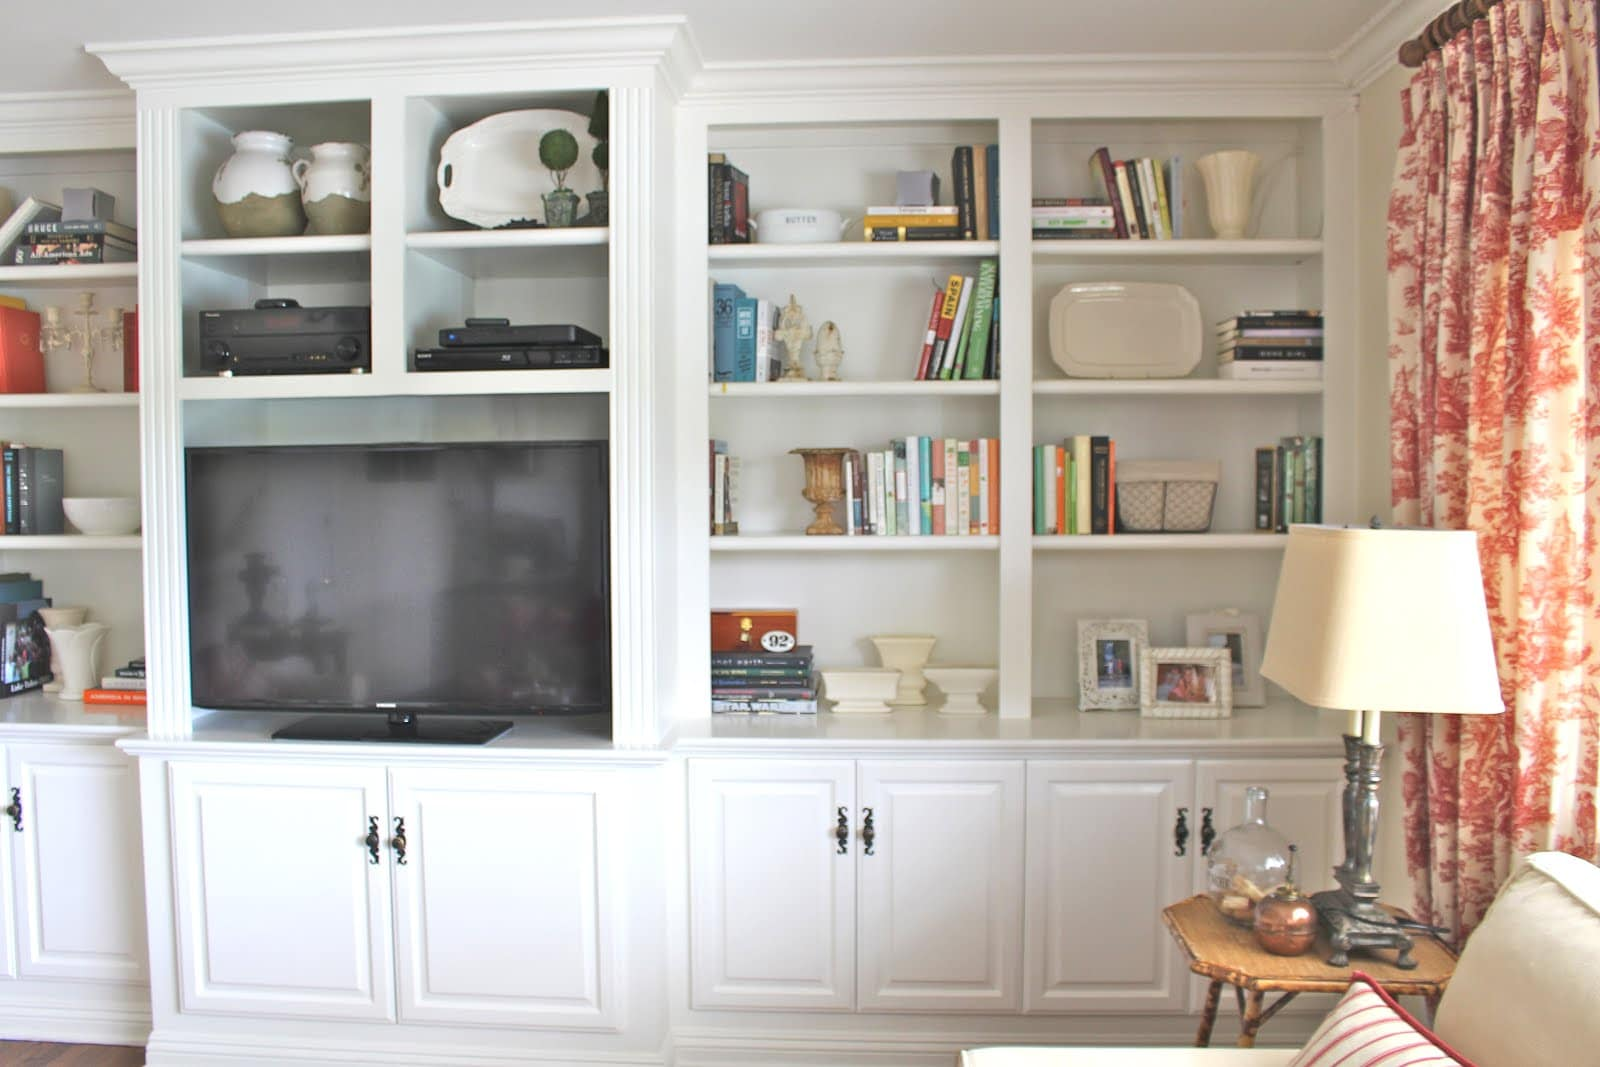 Family Room Built-Ins Rearrange - How I Pared Down and Simplified